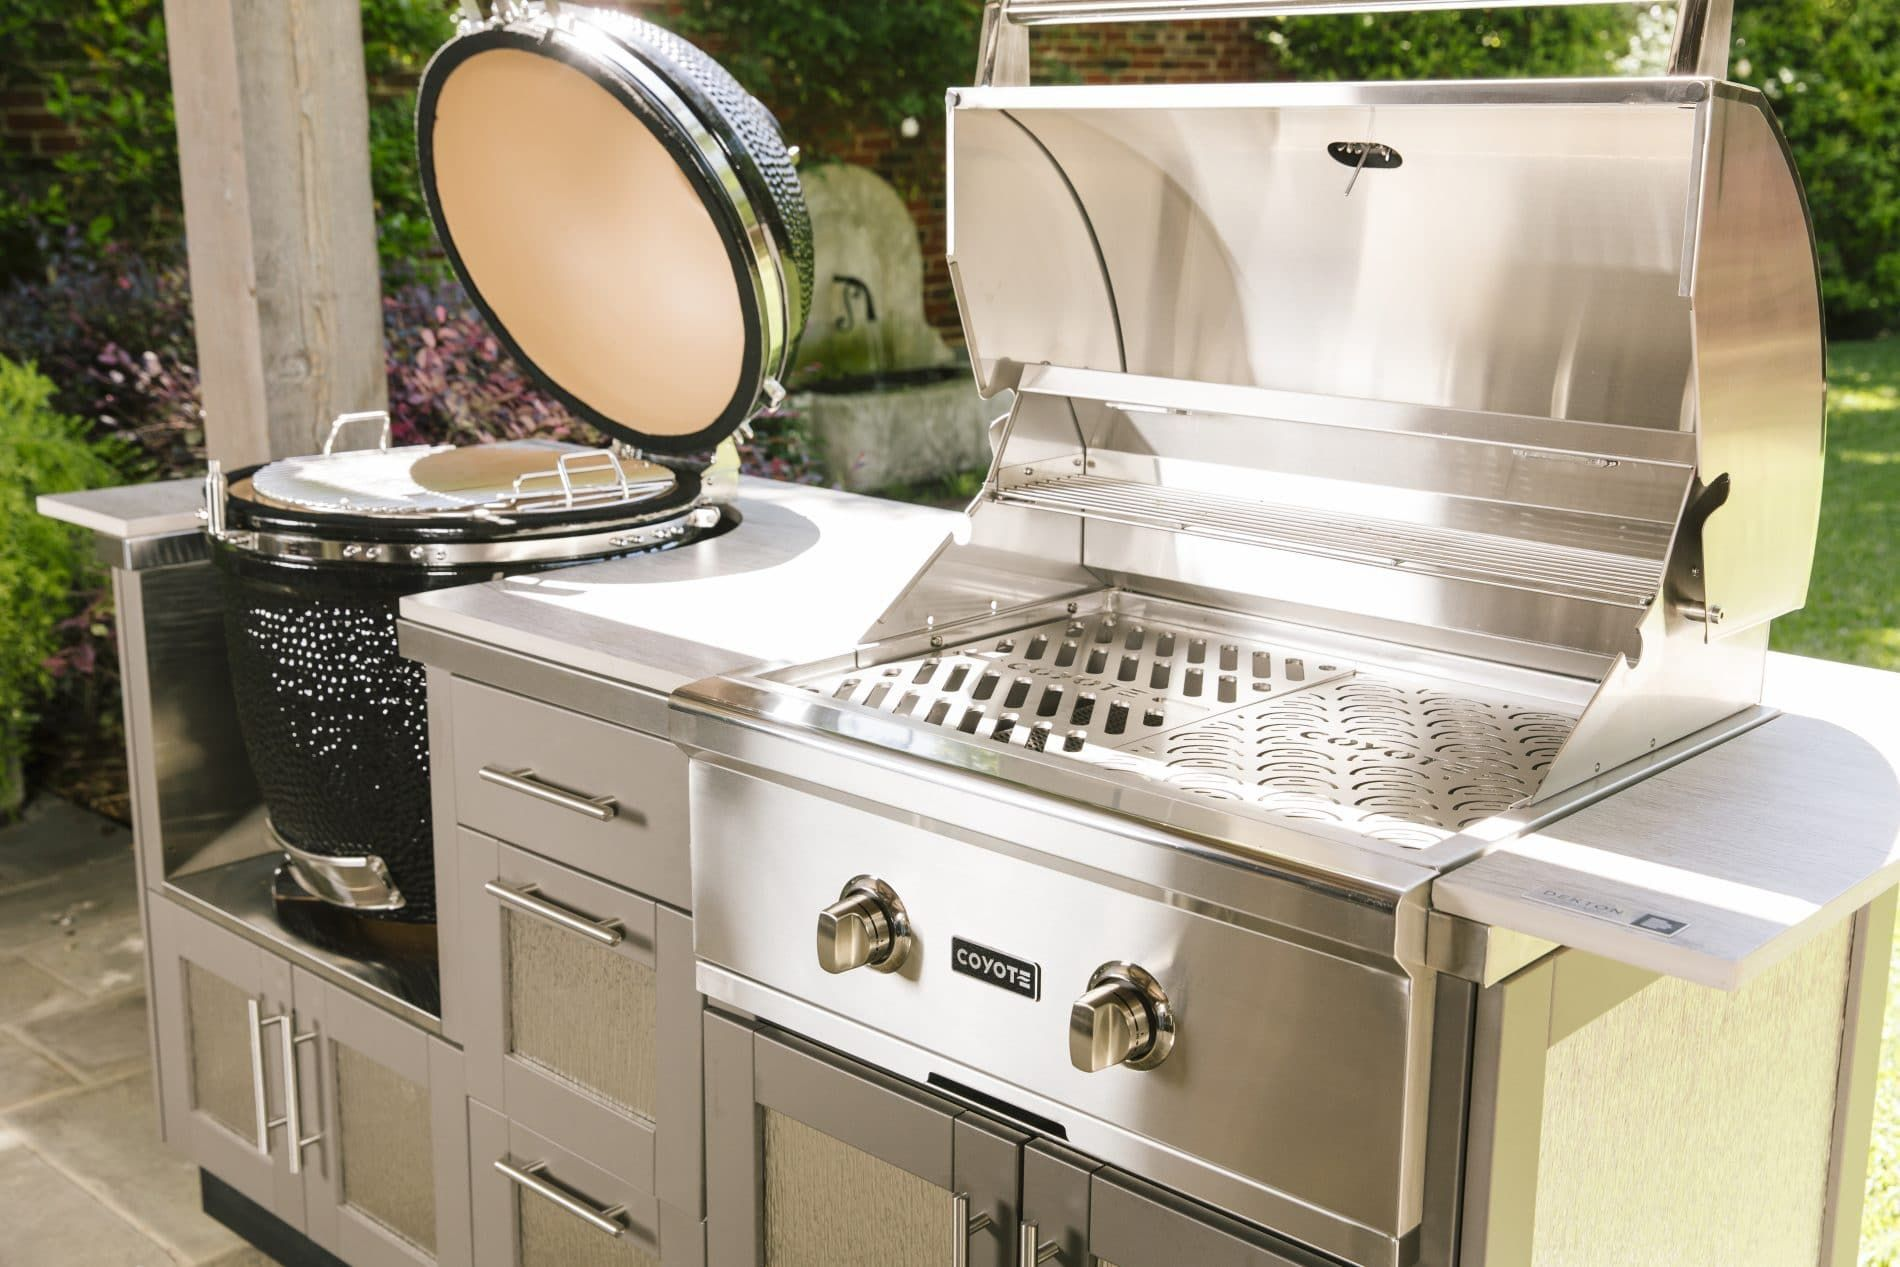 Coyote Grills Makes Both Asado Smokers And Gas Grills For A Solid Outdoor Grilling Experience With A Wide Hea Outdoor Appliances Outdoor Kitchen Built In Grill